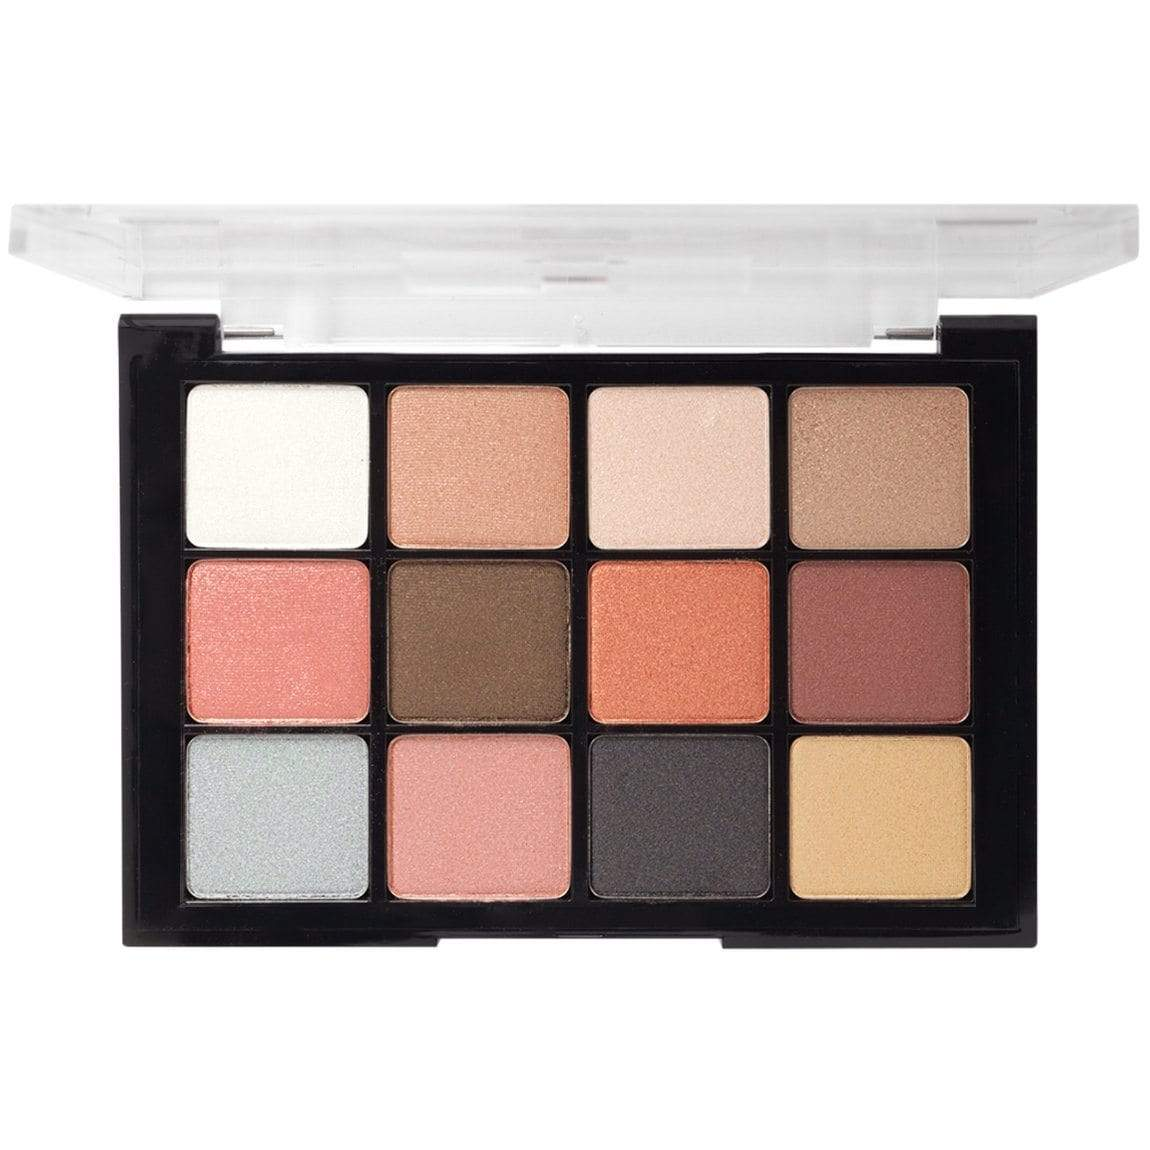 VISEART Eyeshadow palette - Sultry Muse, eyeshadow palette, London Loves Beauty